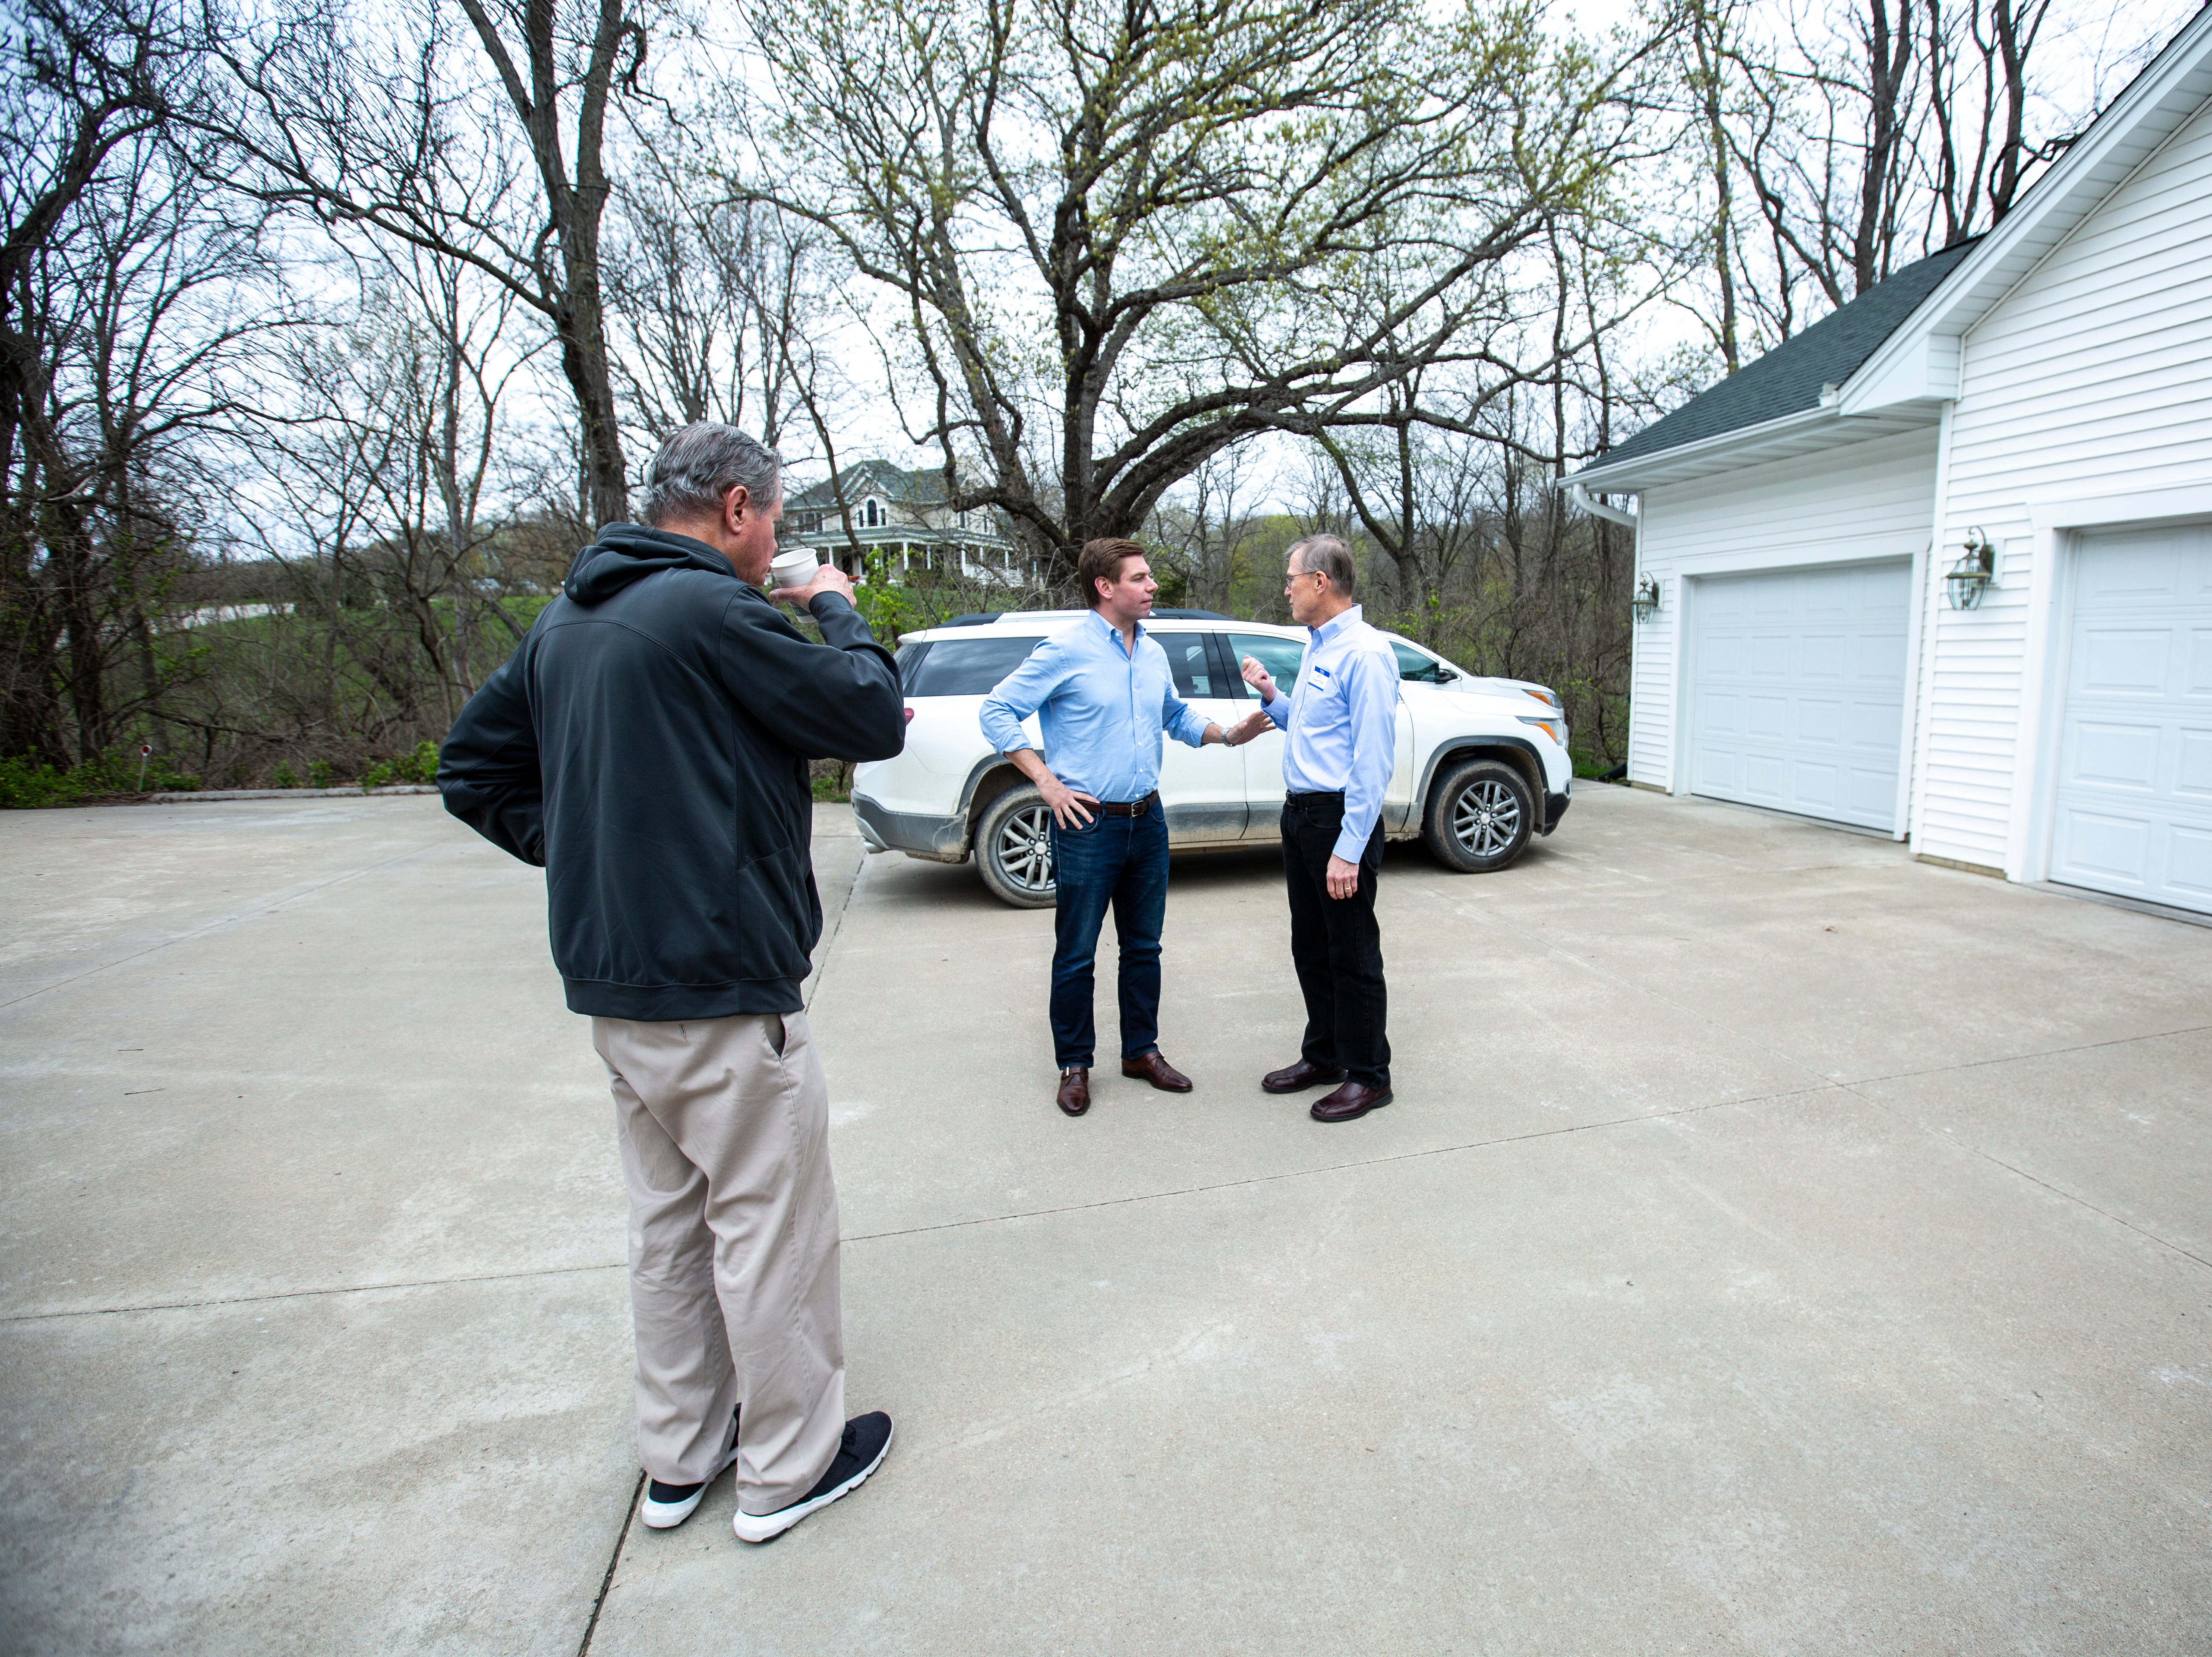 """U.S. Rep. Eric Swalwell, D-Calif., talks with Ed Cranston, right, before speaking to a group at a house party hosted by the """"Potluck Insurgency"""" group, Sunday, April 28, 2019, at a home in North Liberty, Iowa."""